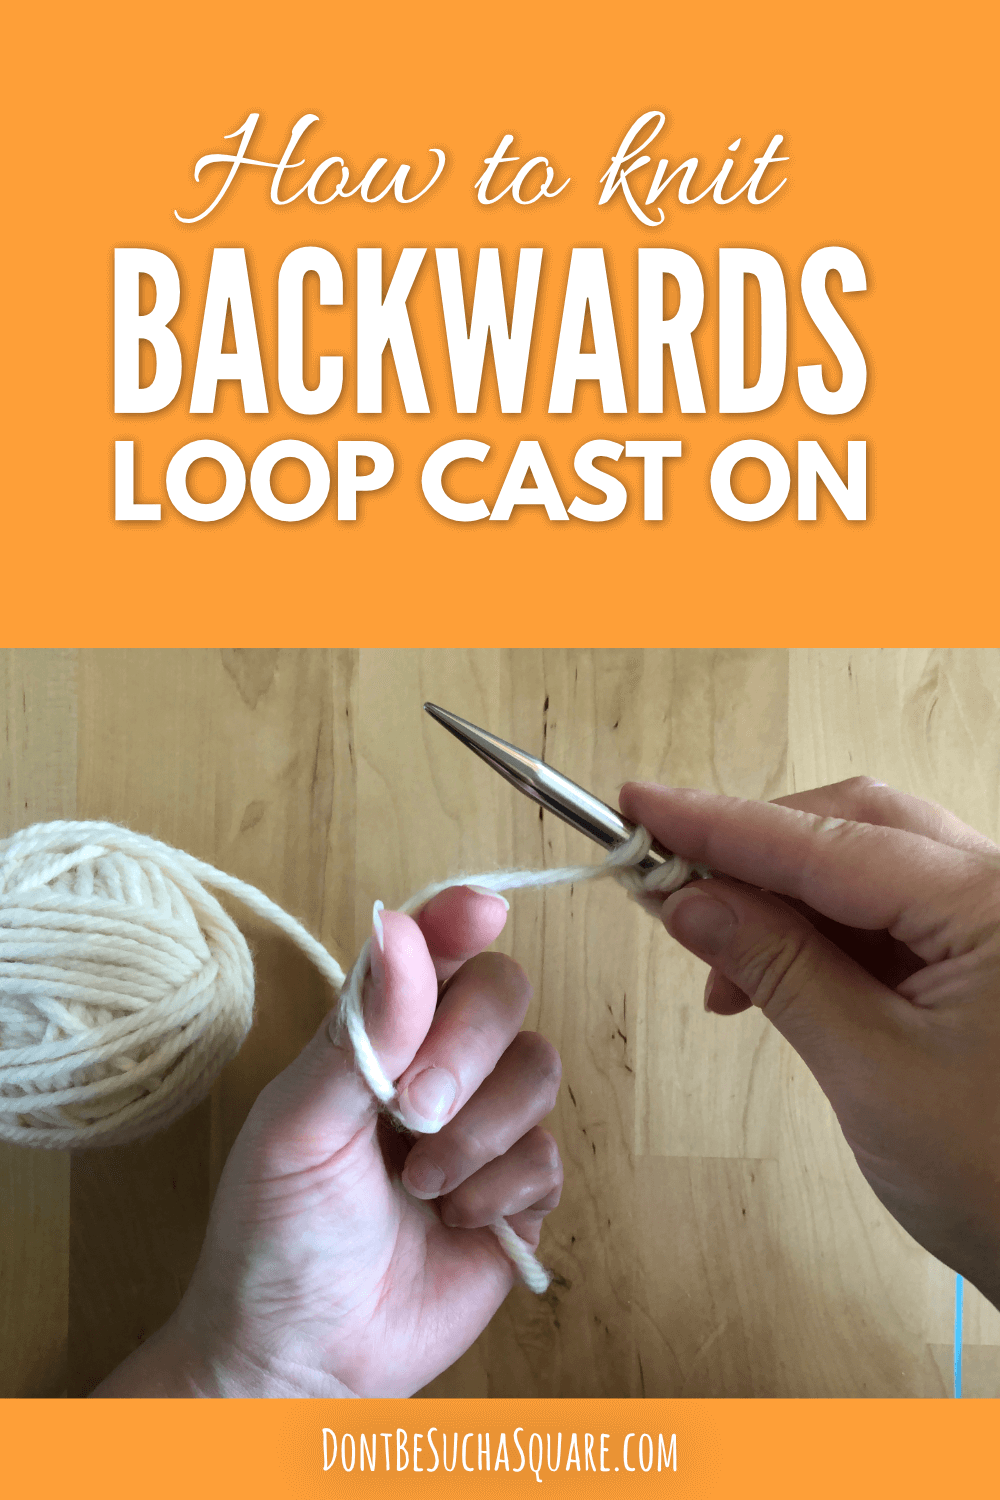 The backwards loop cast on is good both for starting a new project and for adding stitches in the middle of a row. And it's easy to make! #knitting #caston #backwardsloop #addingstitches